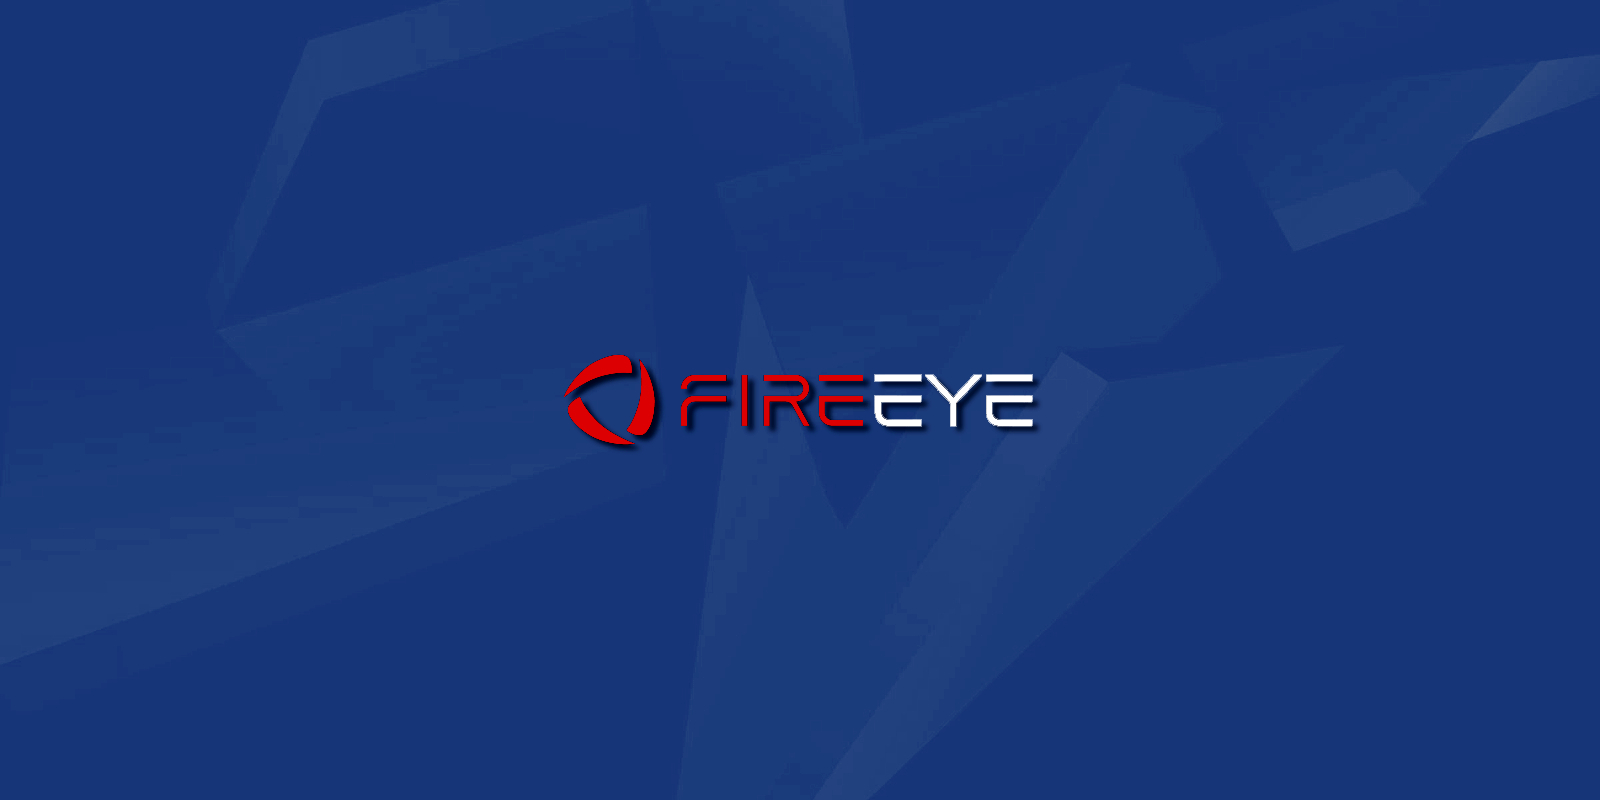 FireEye reveals that it was hacked by a nation state APT group